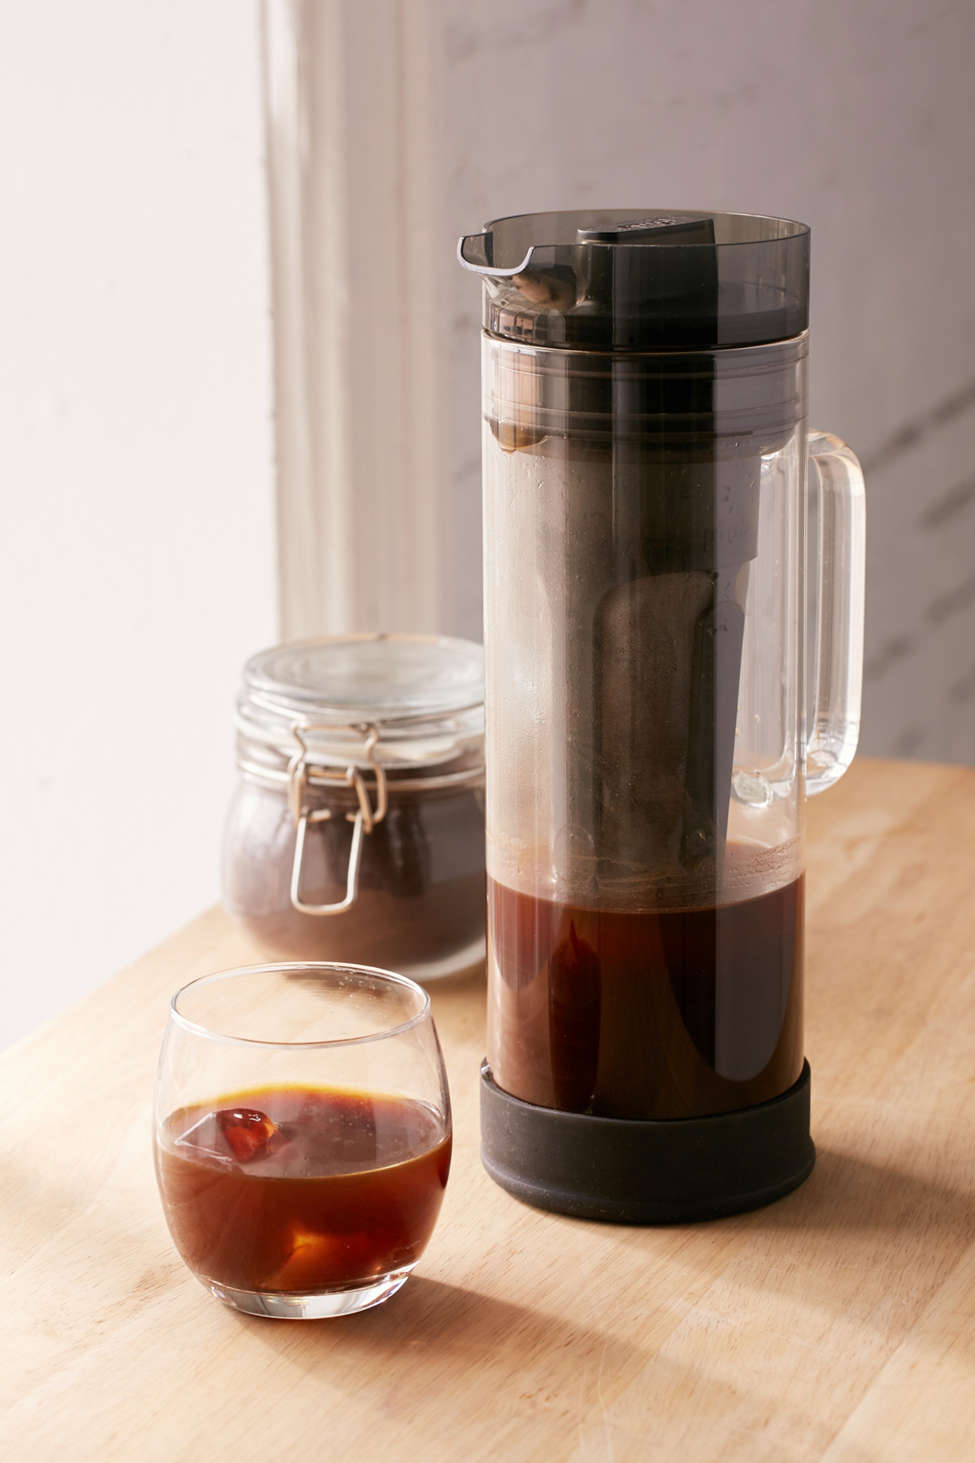 Slide View: 1: Cold Brew Coffee Maker